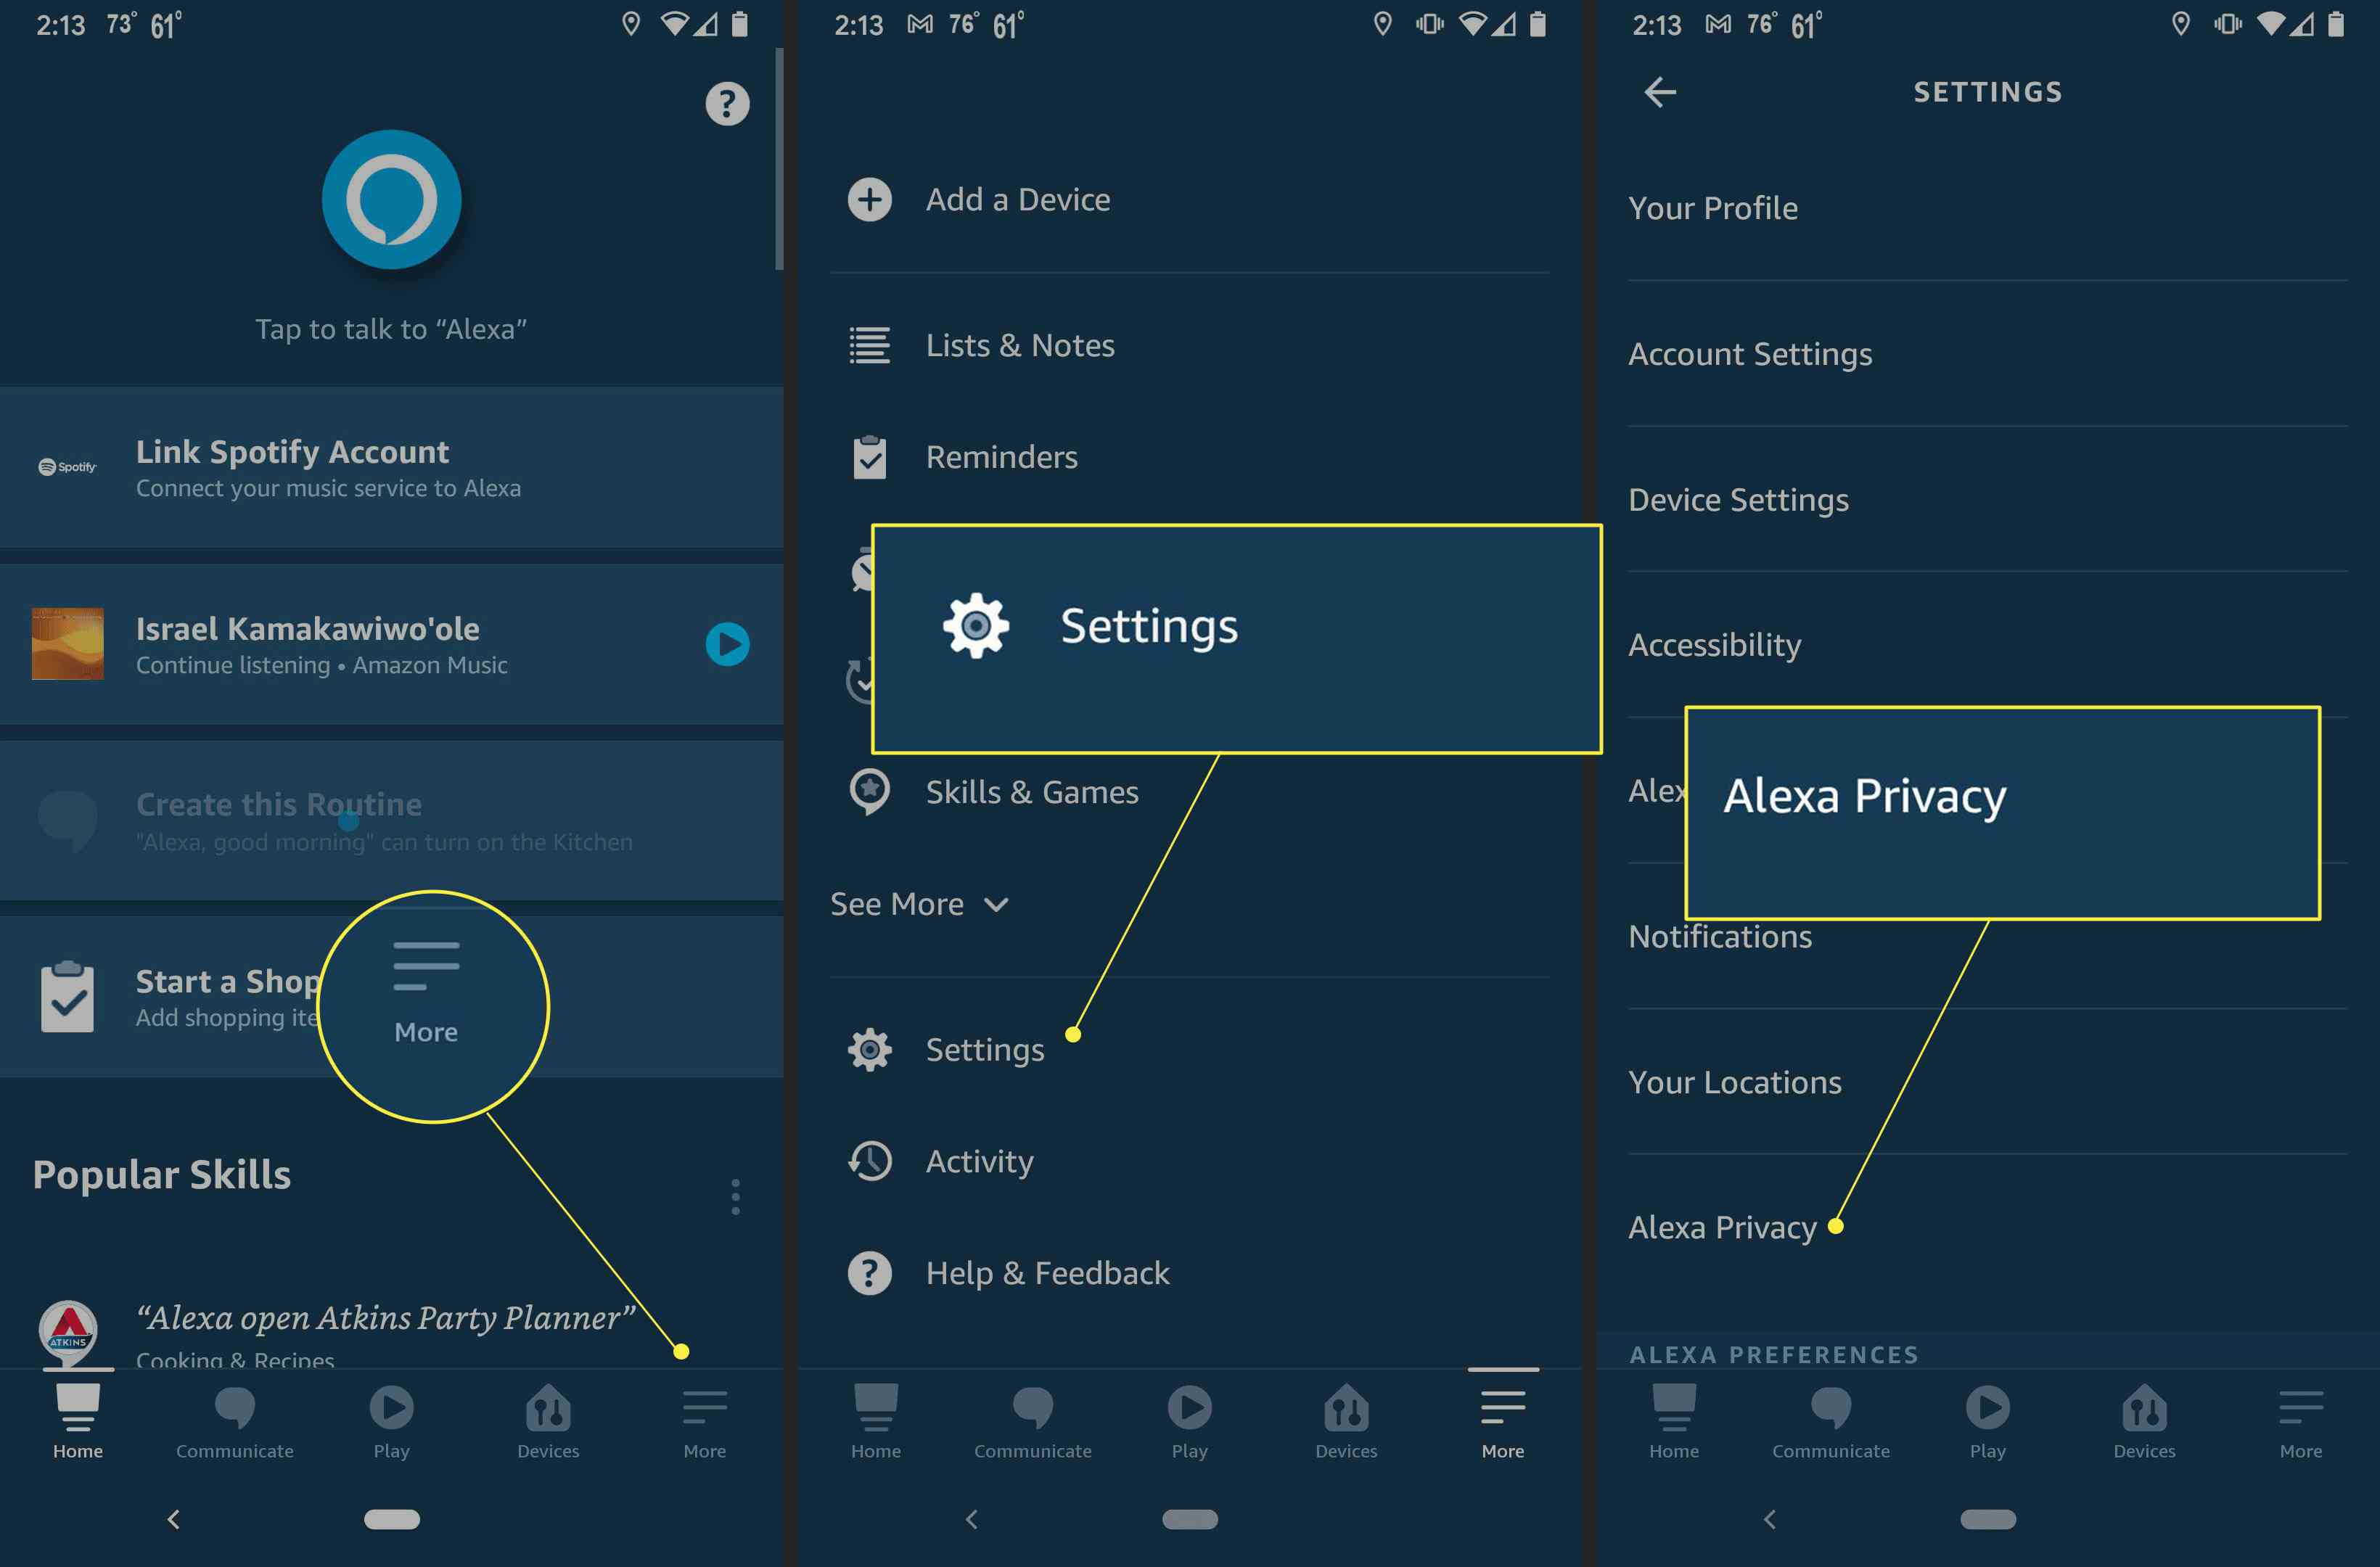 Steps to take to get to Alexa's privacy settings, with